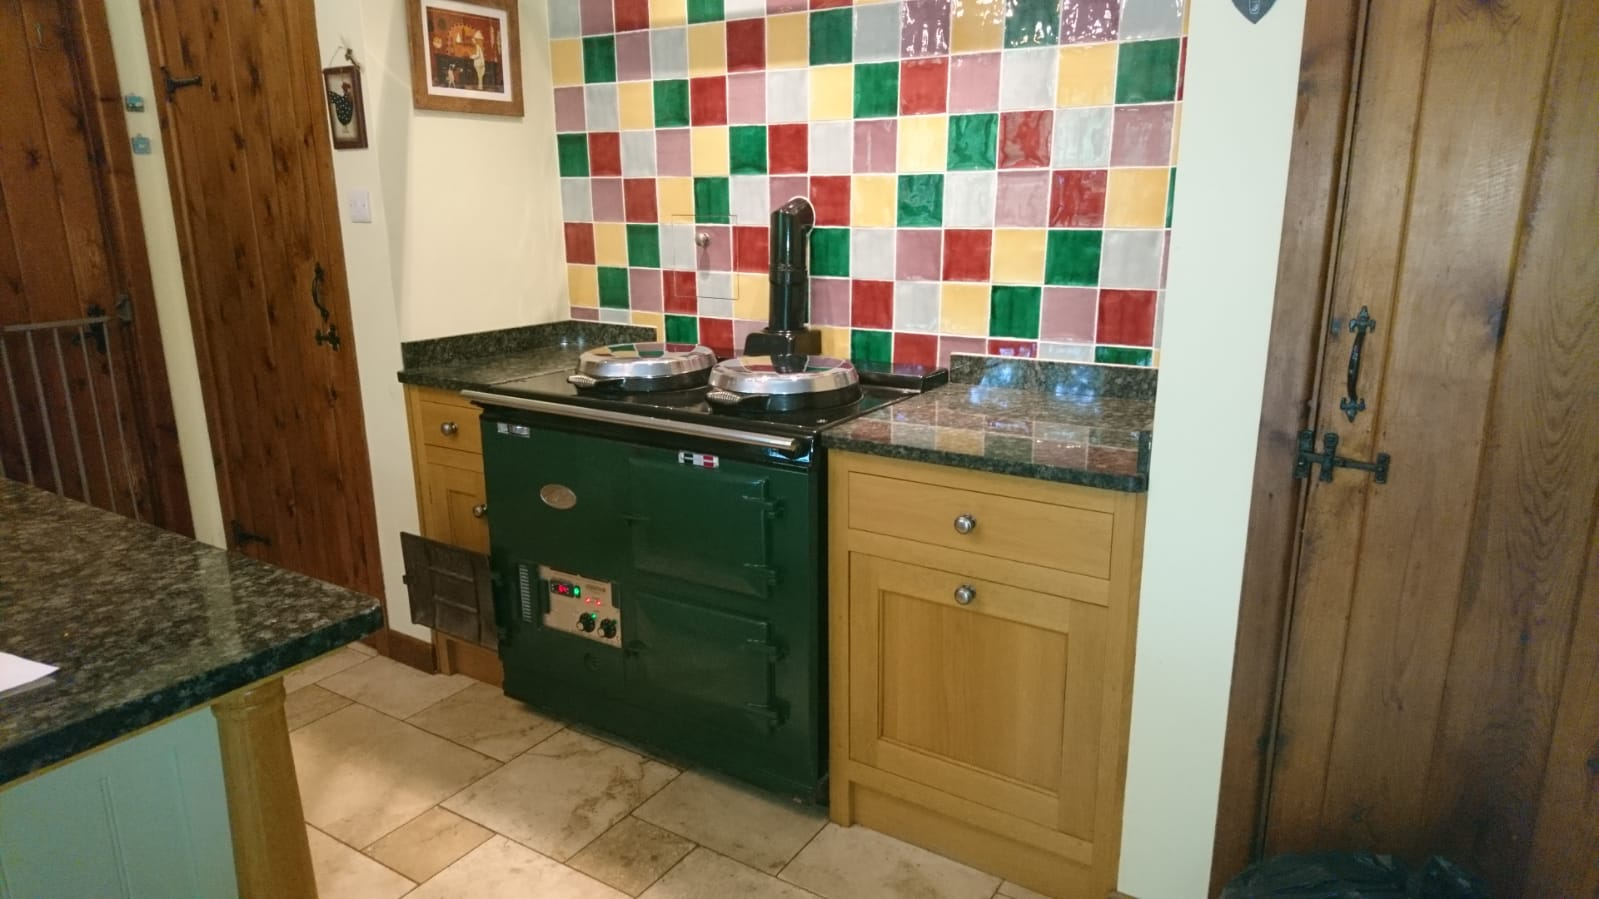 A classic aga conversion, all the charm of the original cooker but with 21st century control . Plus no more servicing required and one less unsightly oil tank